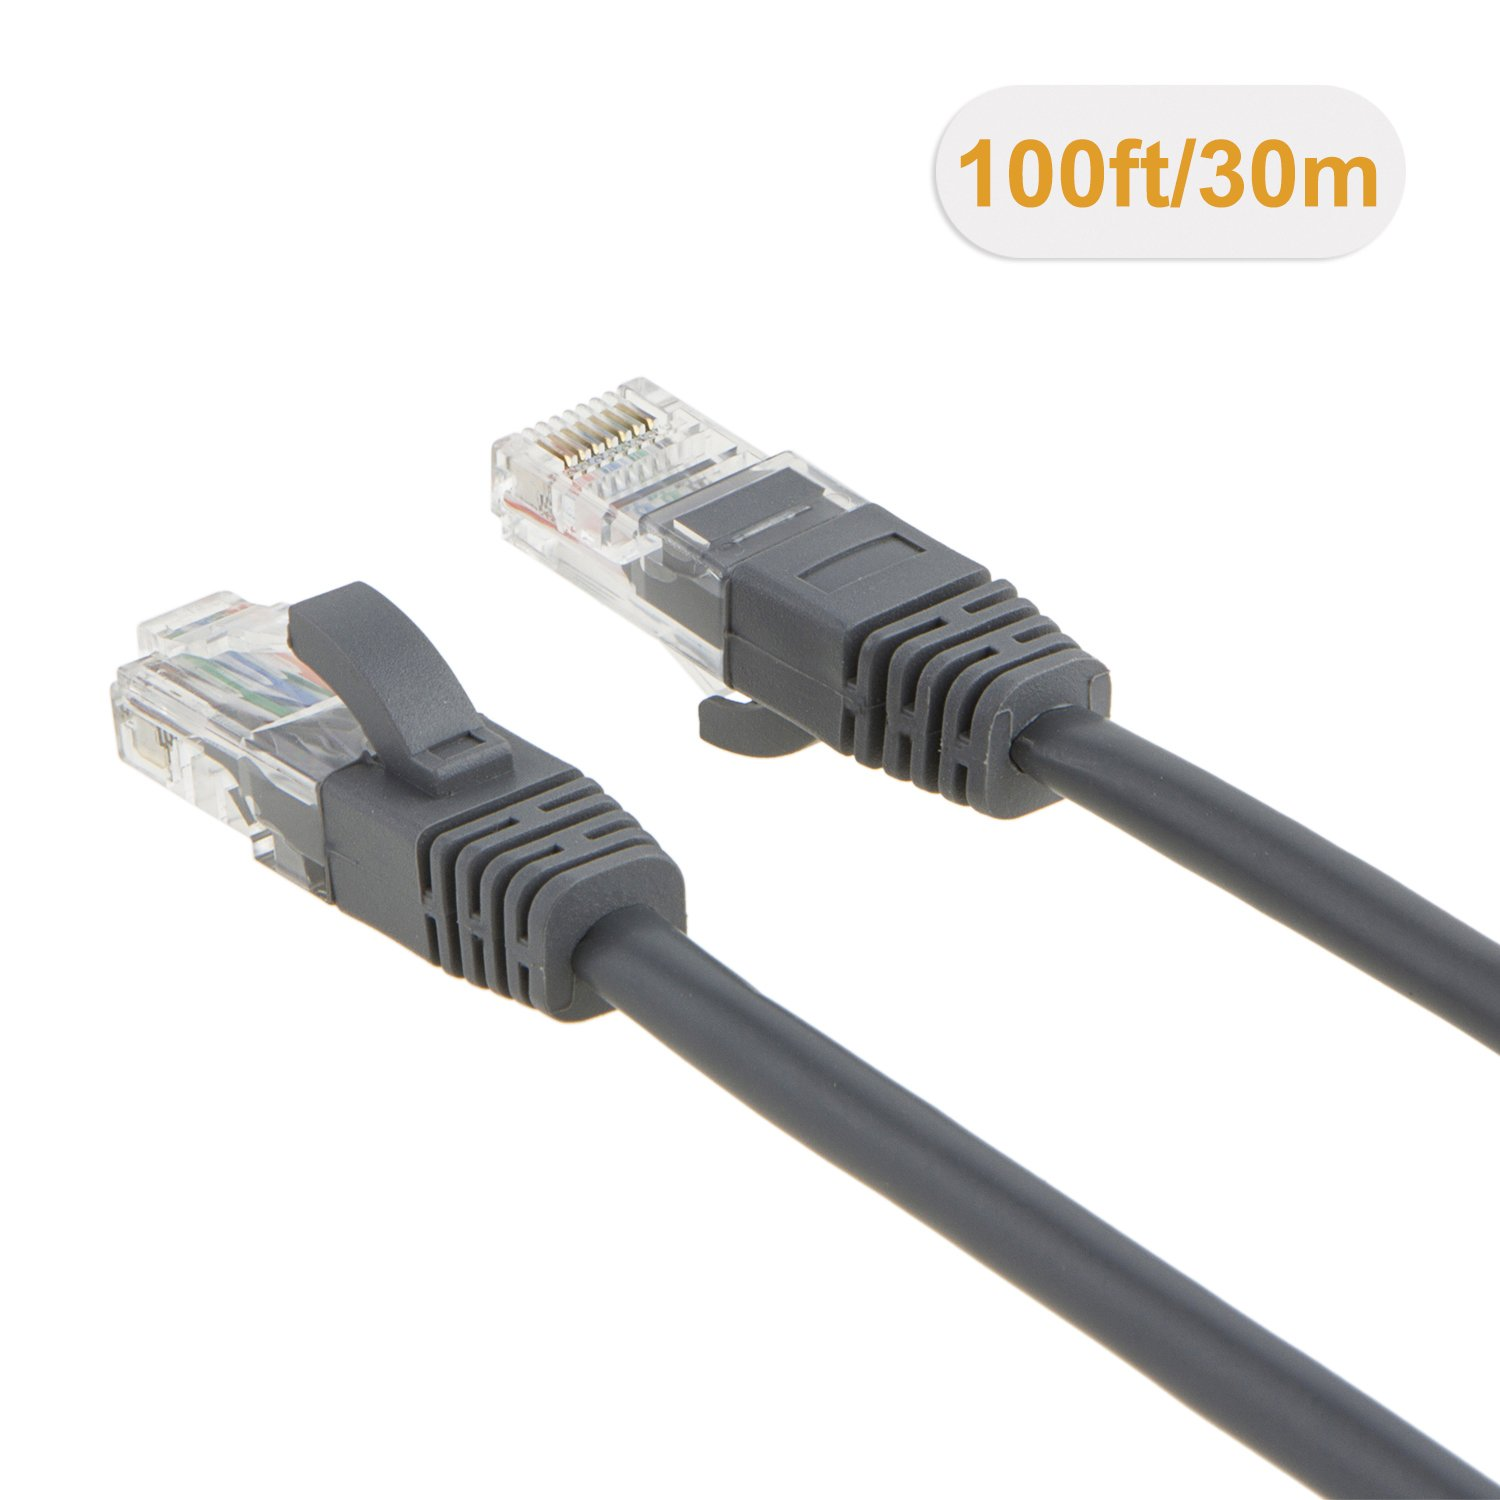 CableCreation 100 Feet CAT 5e Ethernet Patch Cable Blue Color Cat 5e Patch Cord LAN Cable UTP 24AWG+100/% Copper Wire RJ45 Computer Network Cord 30.5m